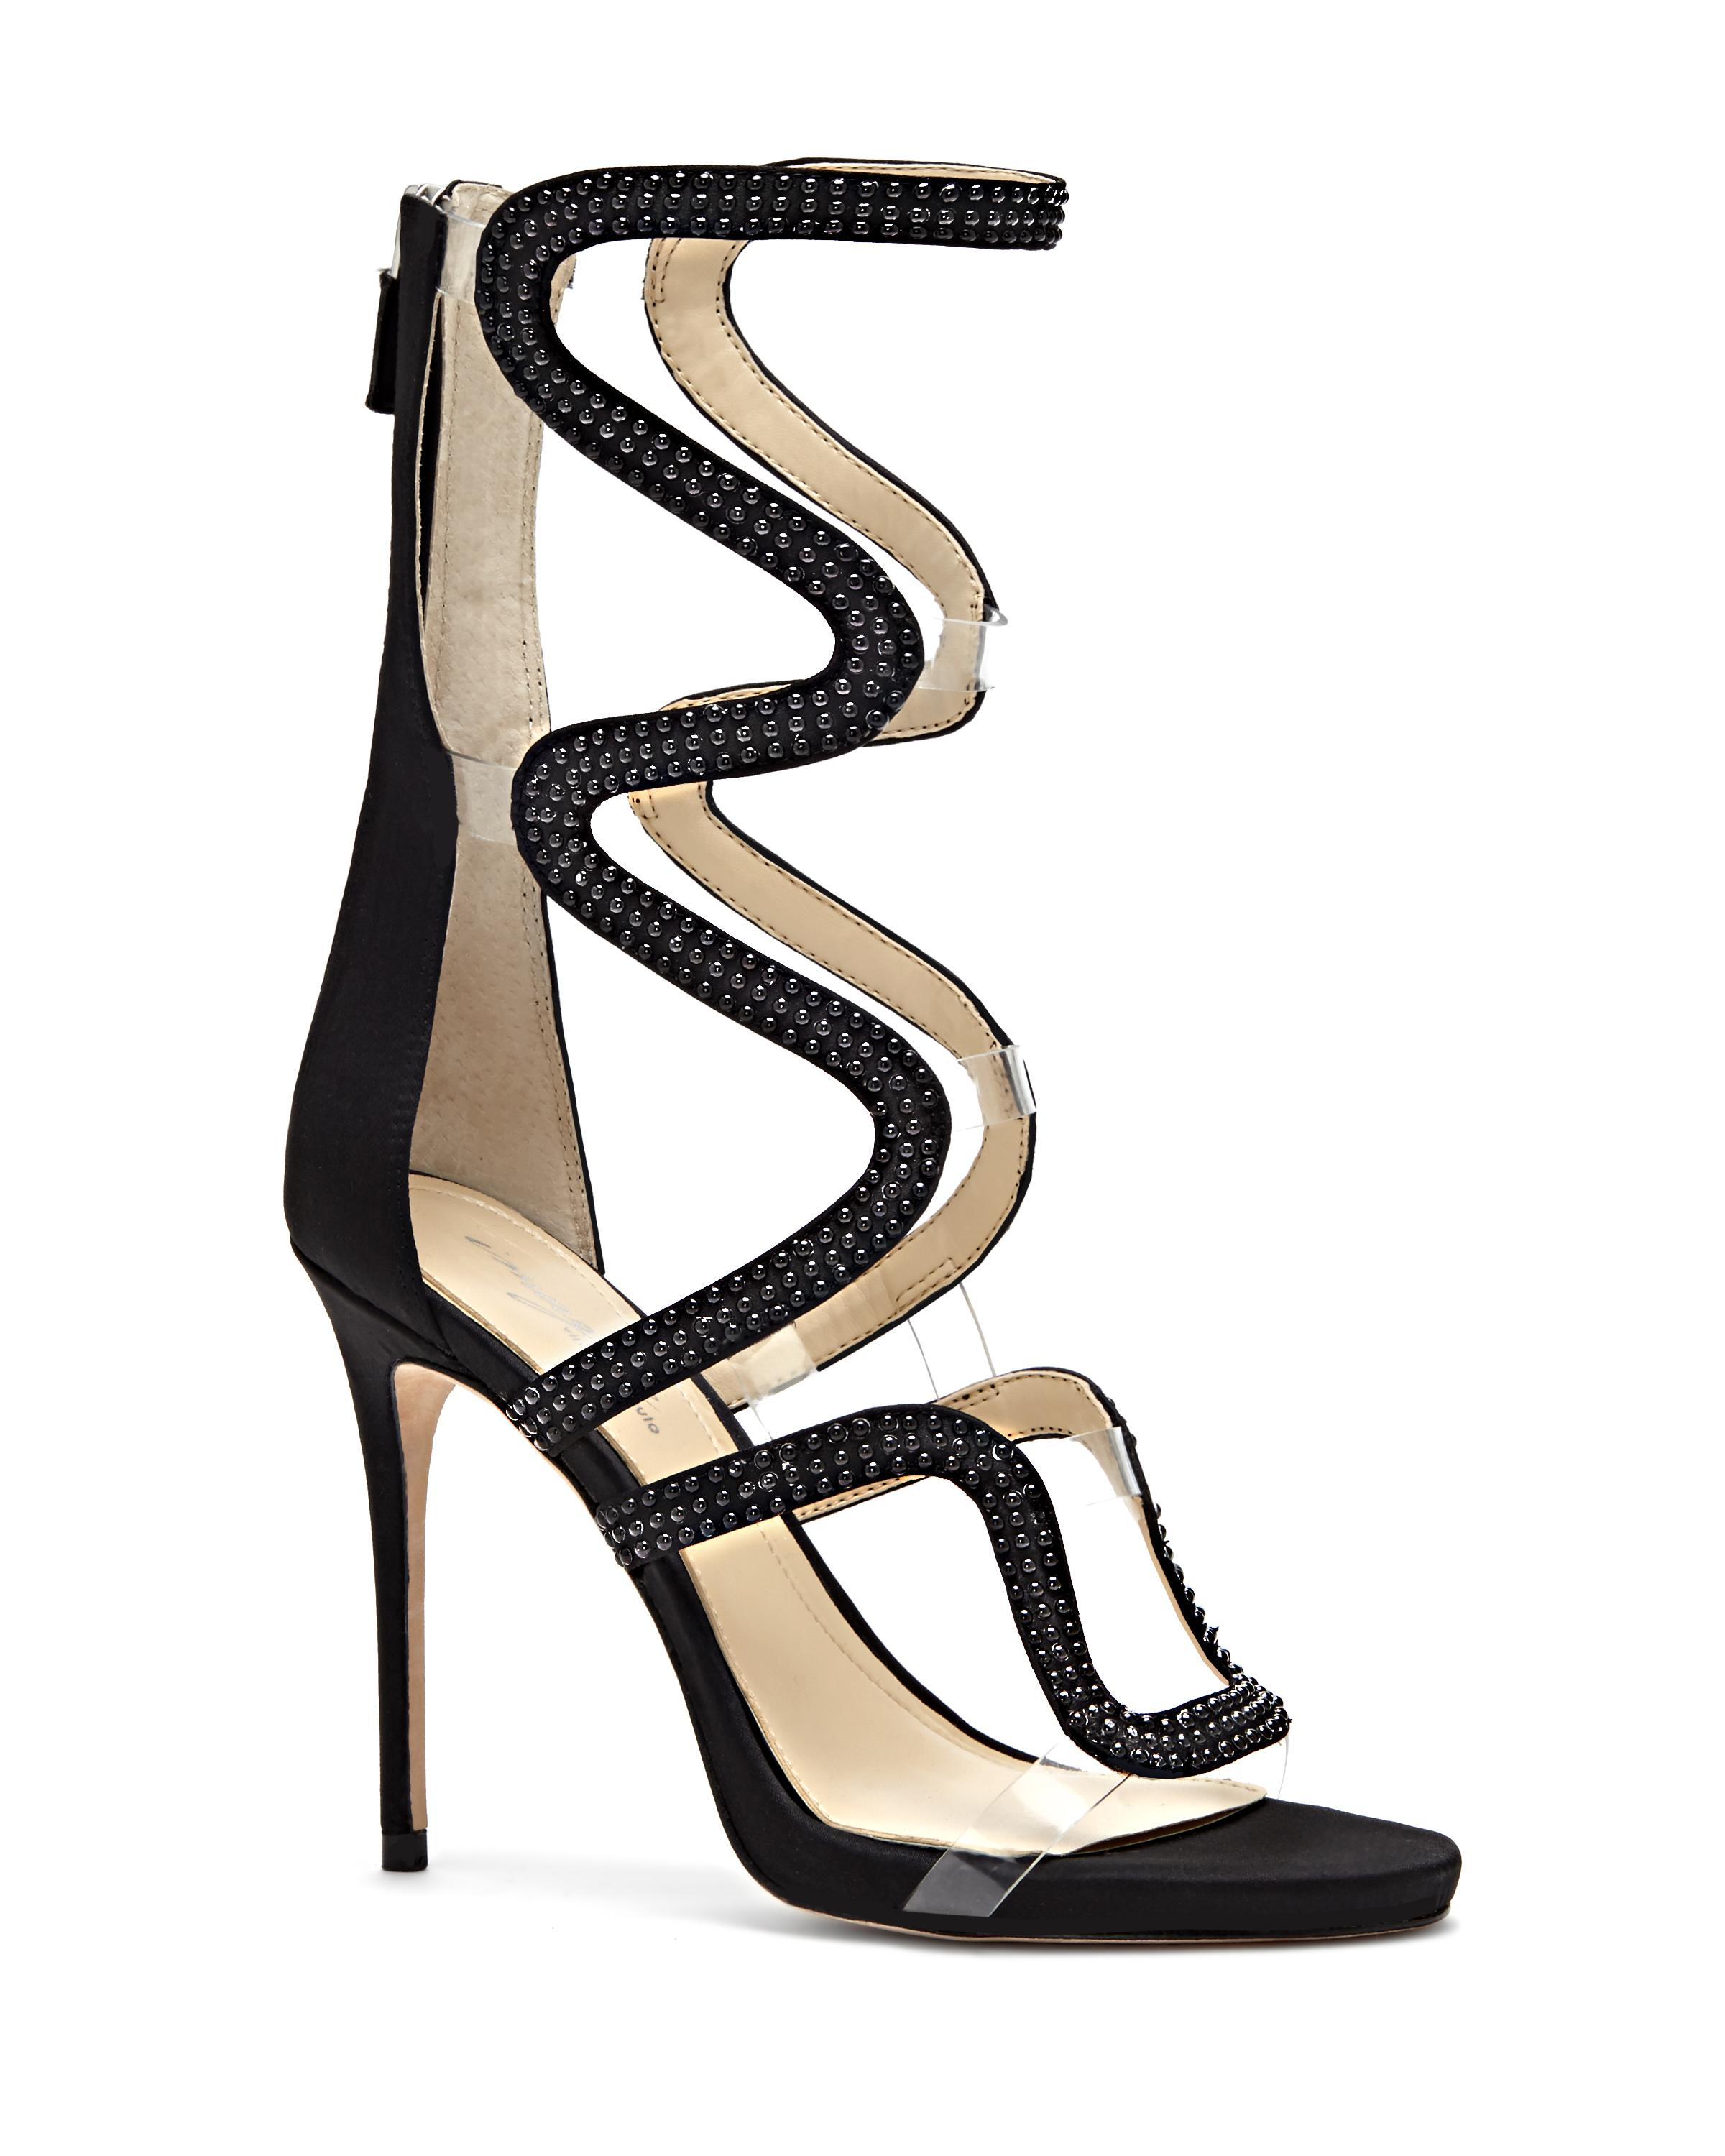 eaffe661a8b Gallery. Previously sold at  Vince Camuto · Women s Gladiator Sandals ...